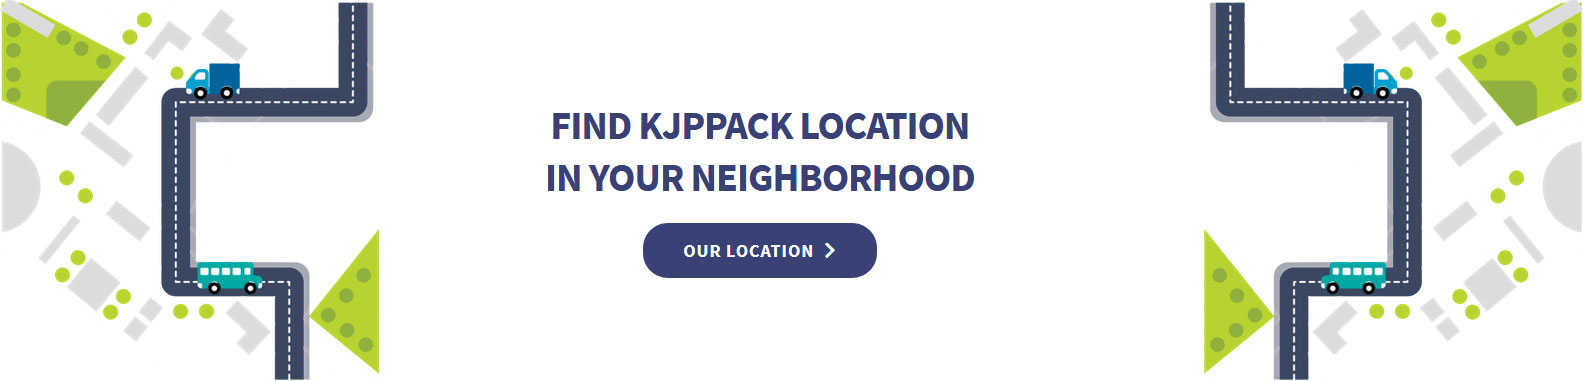 kjp-mobile-location